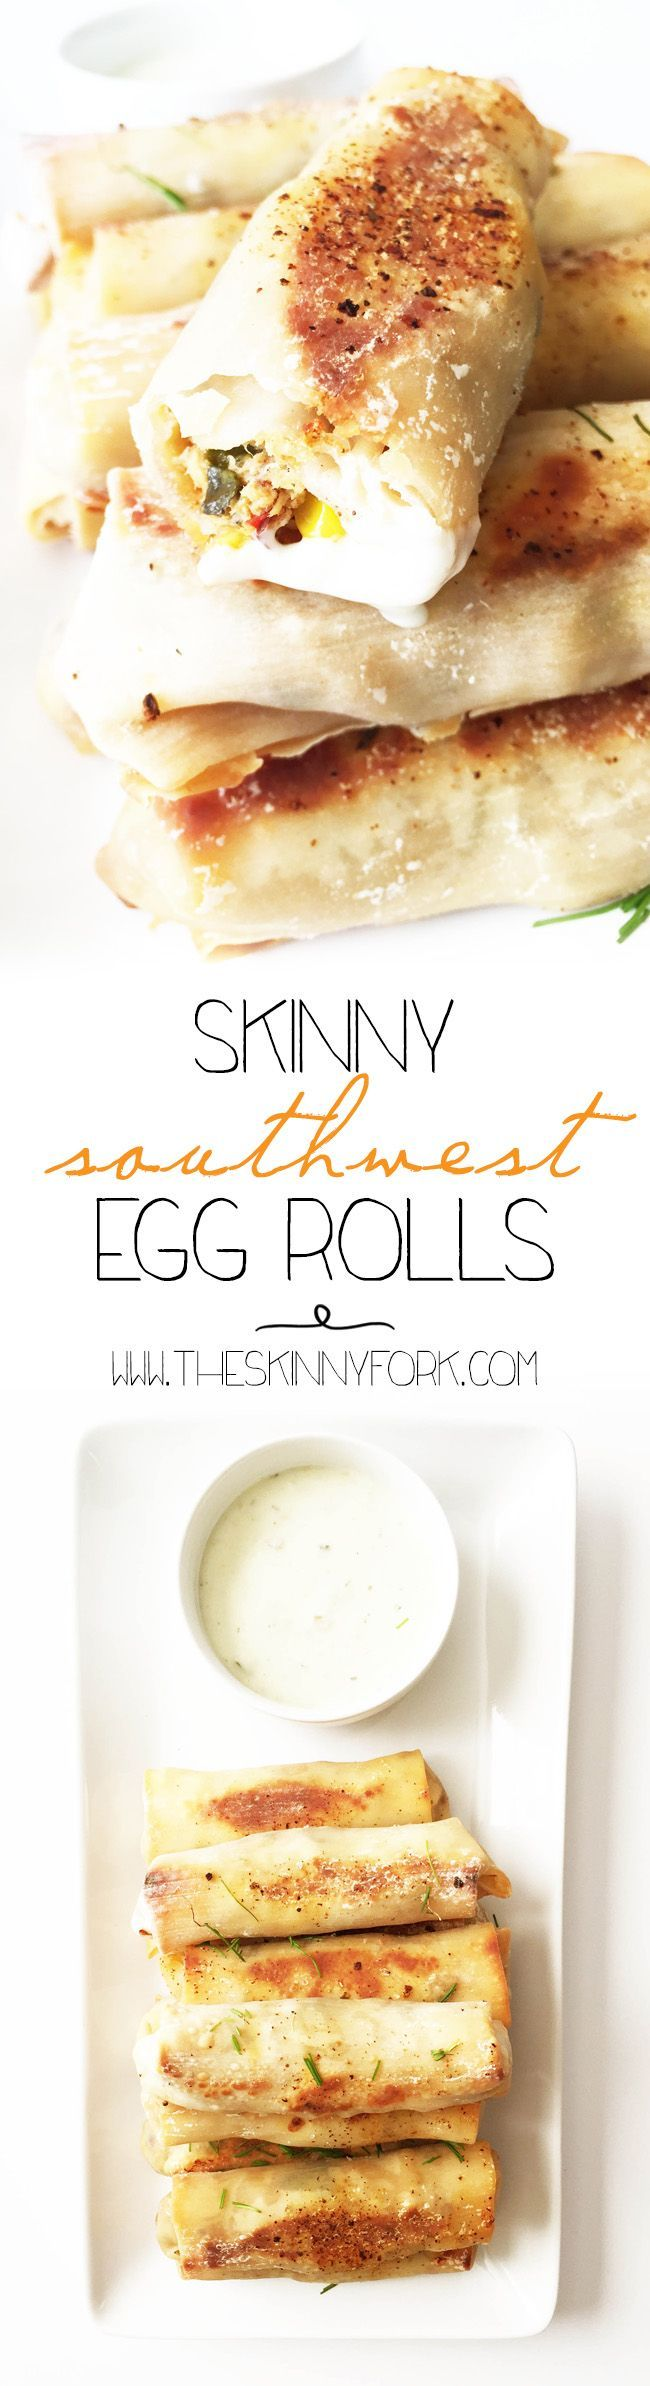 I can't say enough good things about these Skinny Southwest Egg Rolls! All the flavor and crunch of the original with none of the guilt of 'deep fried' anything. TheSkinnyFork.com | Skinny & Healthy Recipes